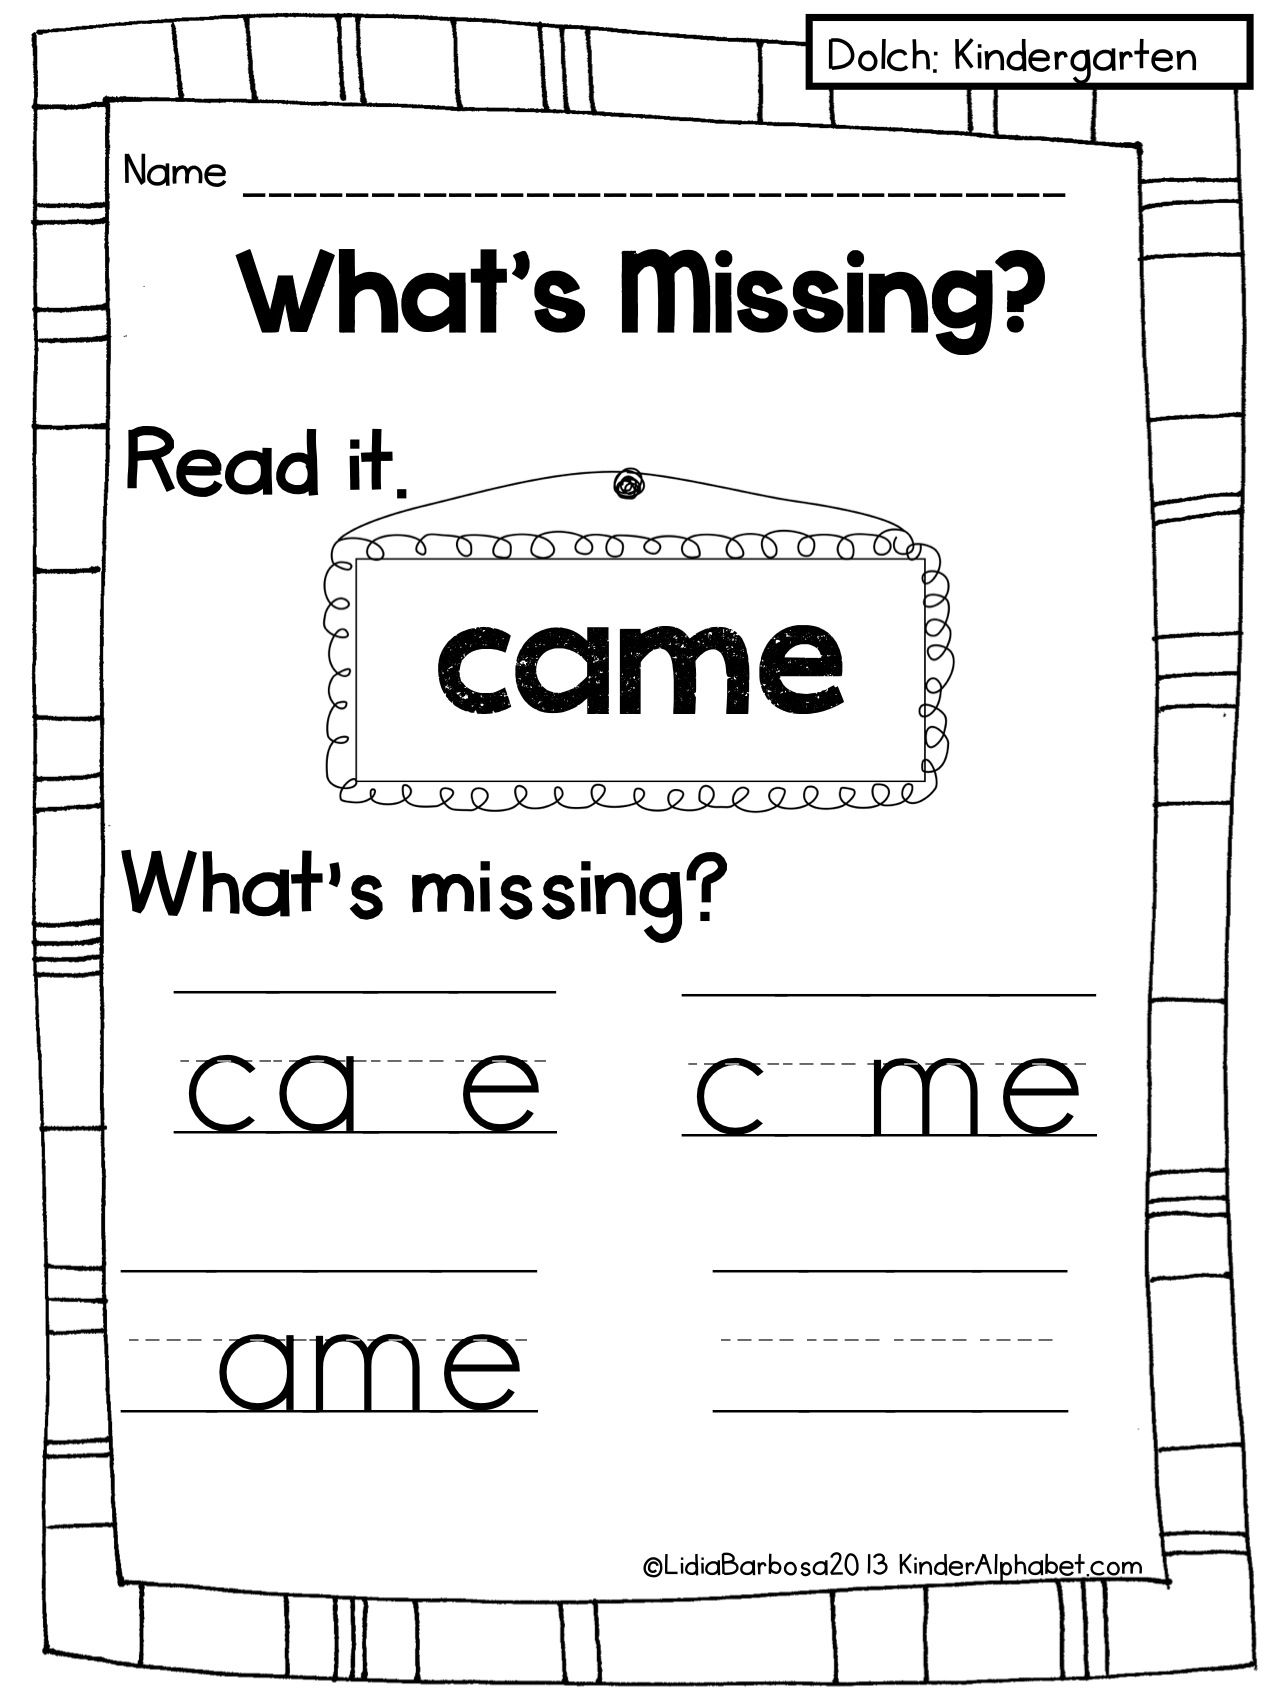 Sight Word Activities To Improve Visual Memory I Want To Change It Around For Spelling Words